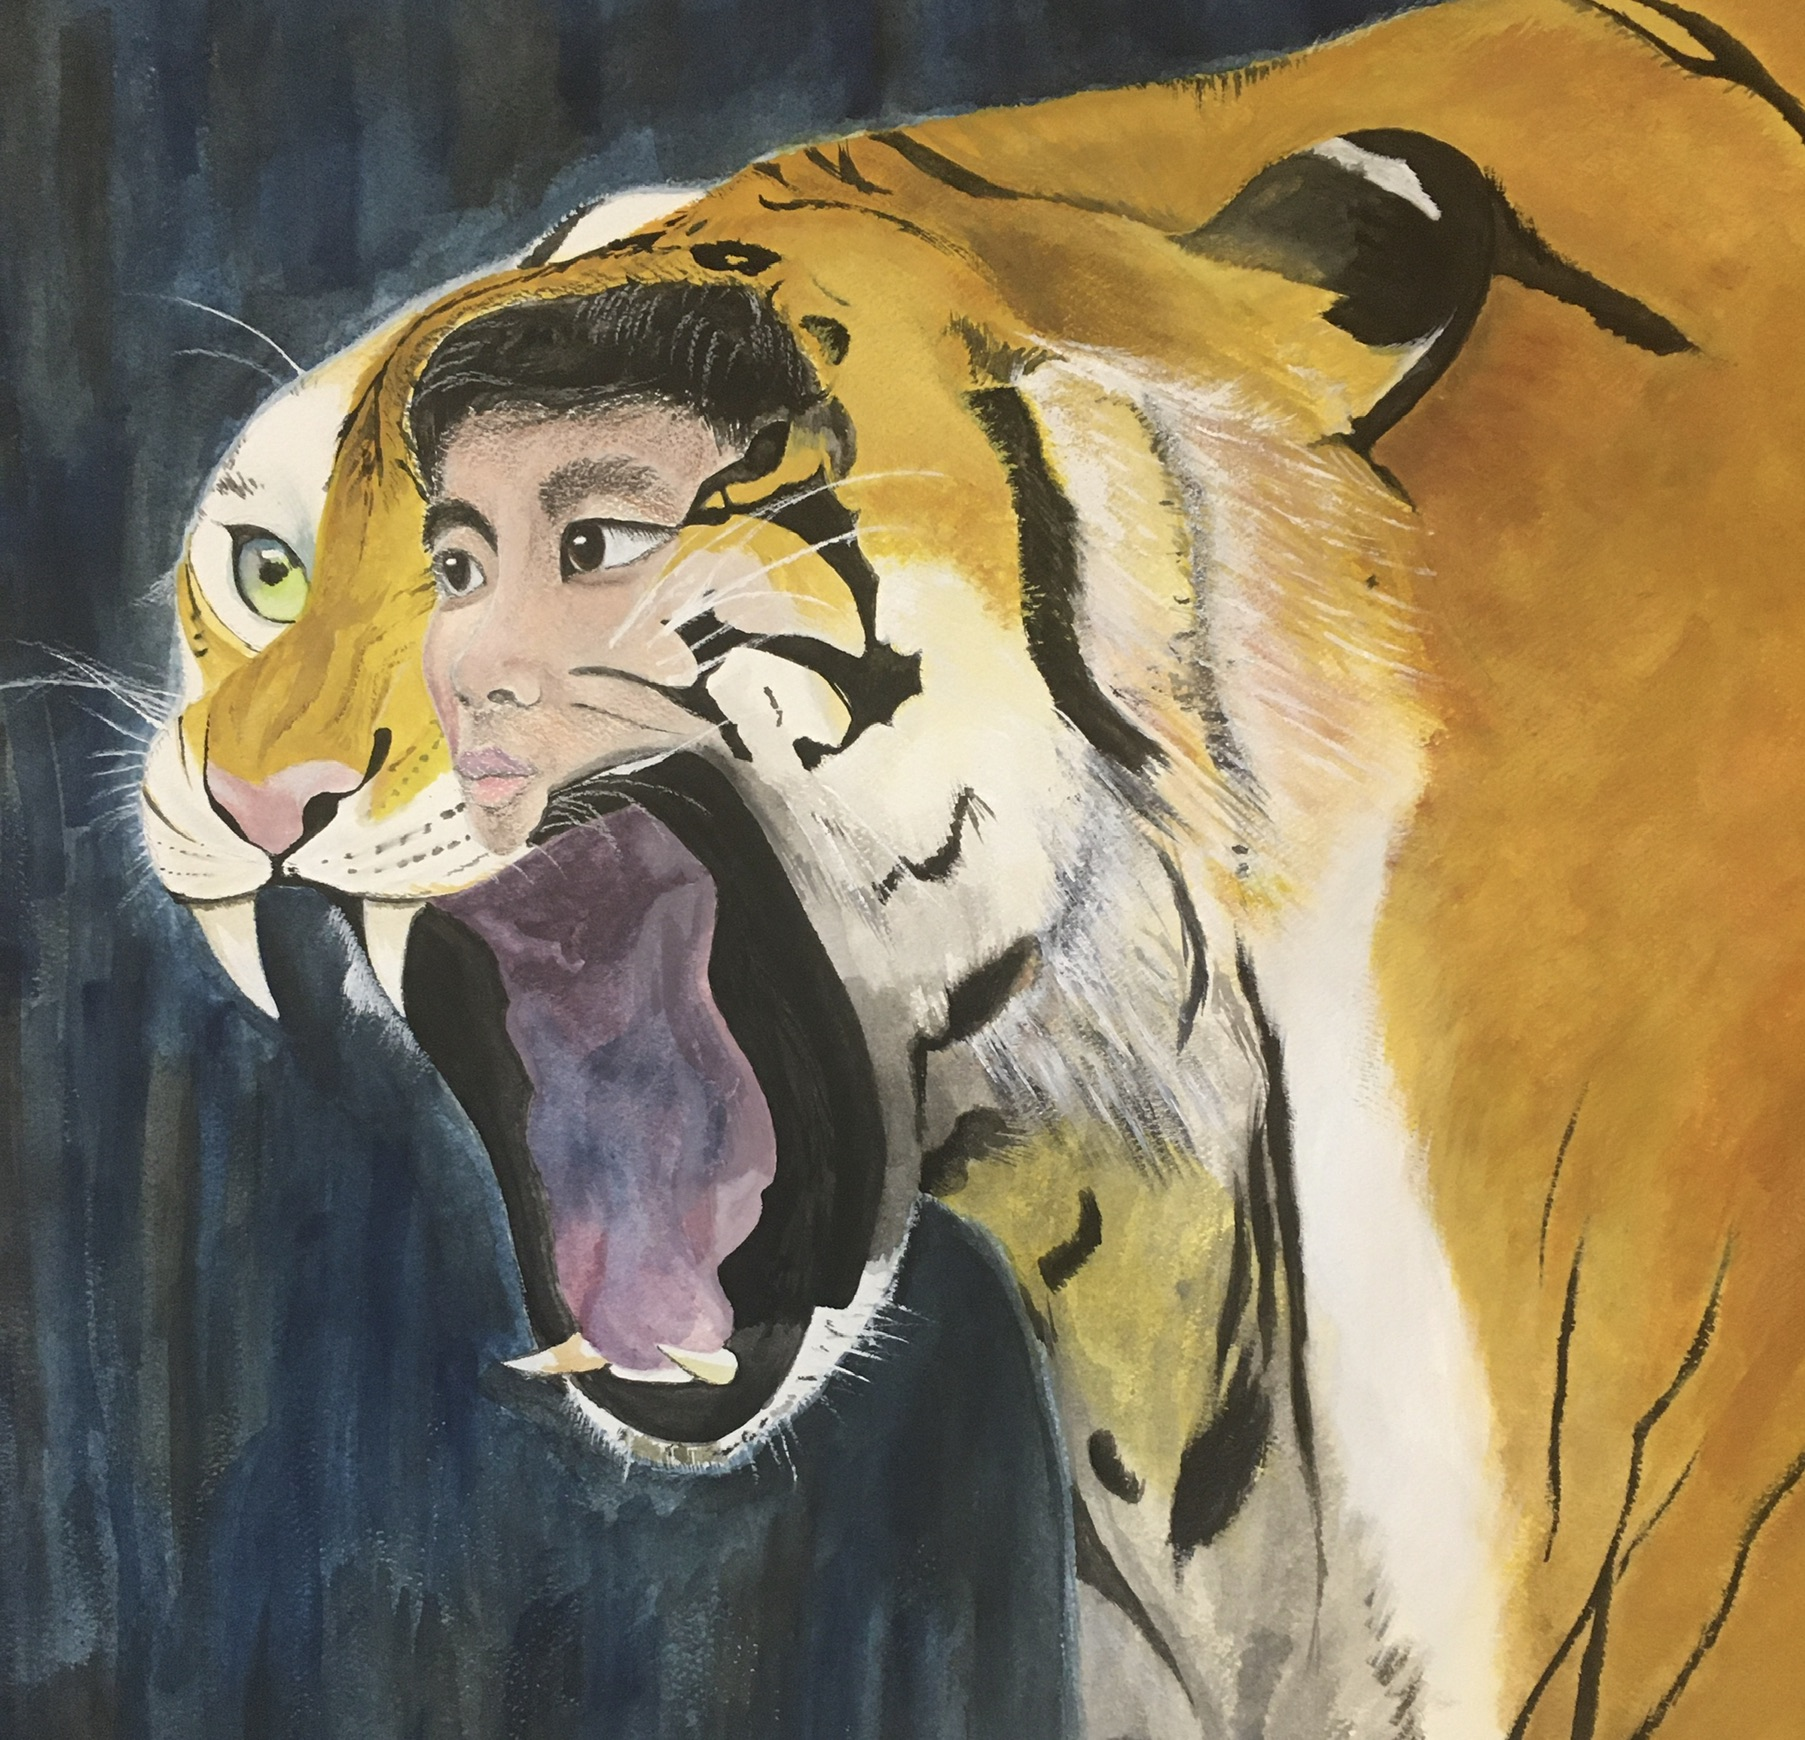 Painting of a Bengal Tiger with a man's face superimposed on it, painted by by G. Chen